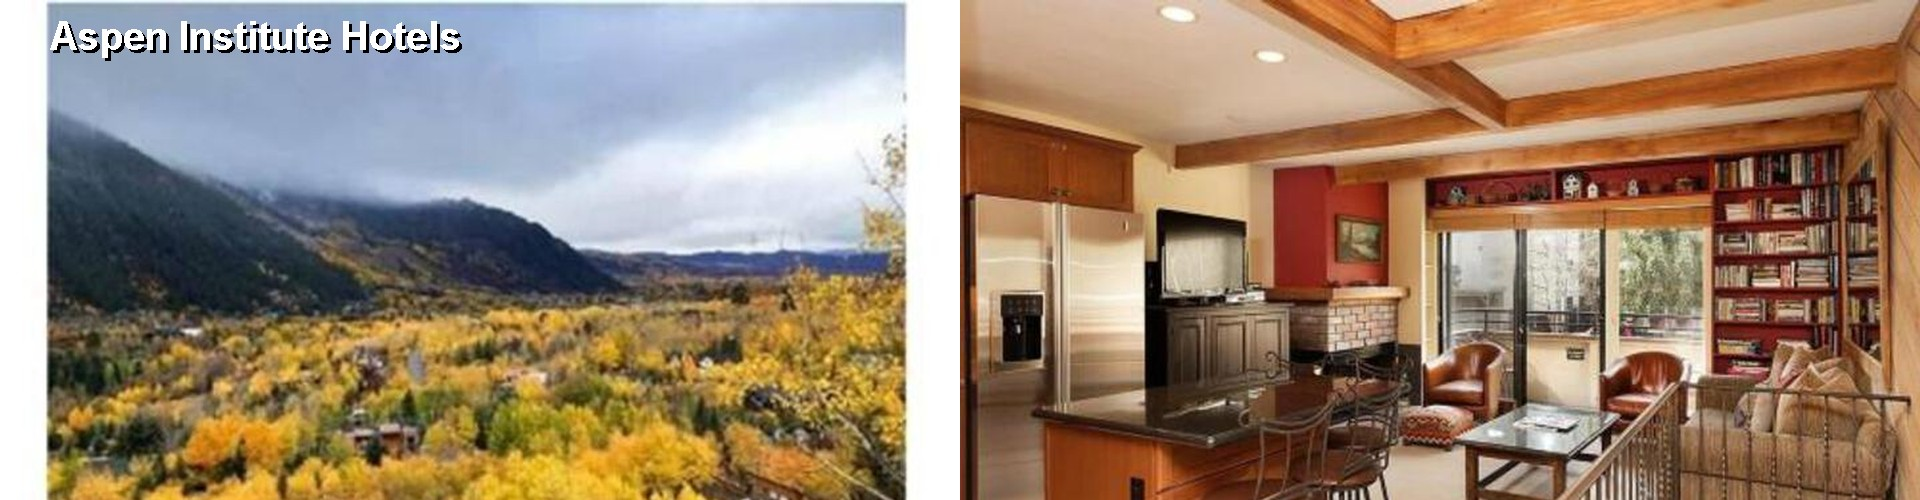 5 Best Hotels near Aspen Institute